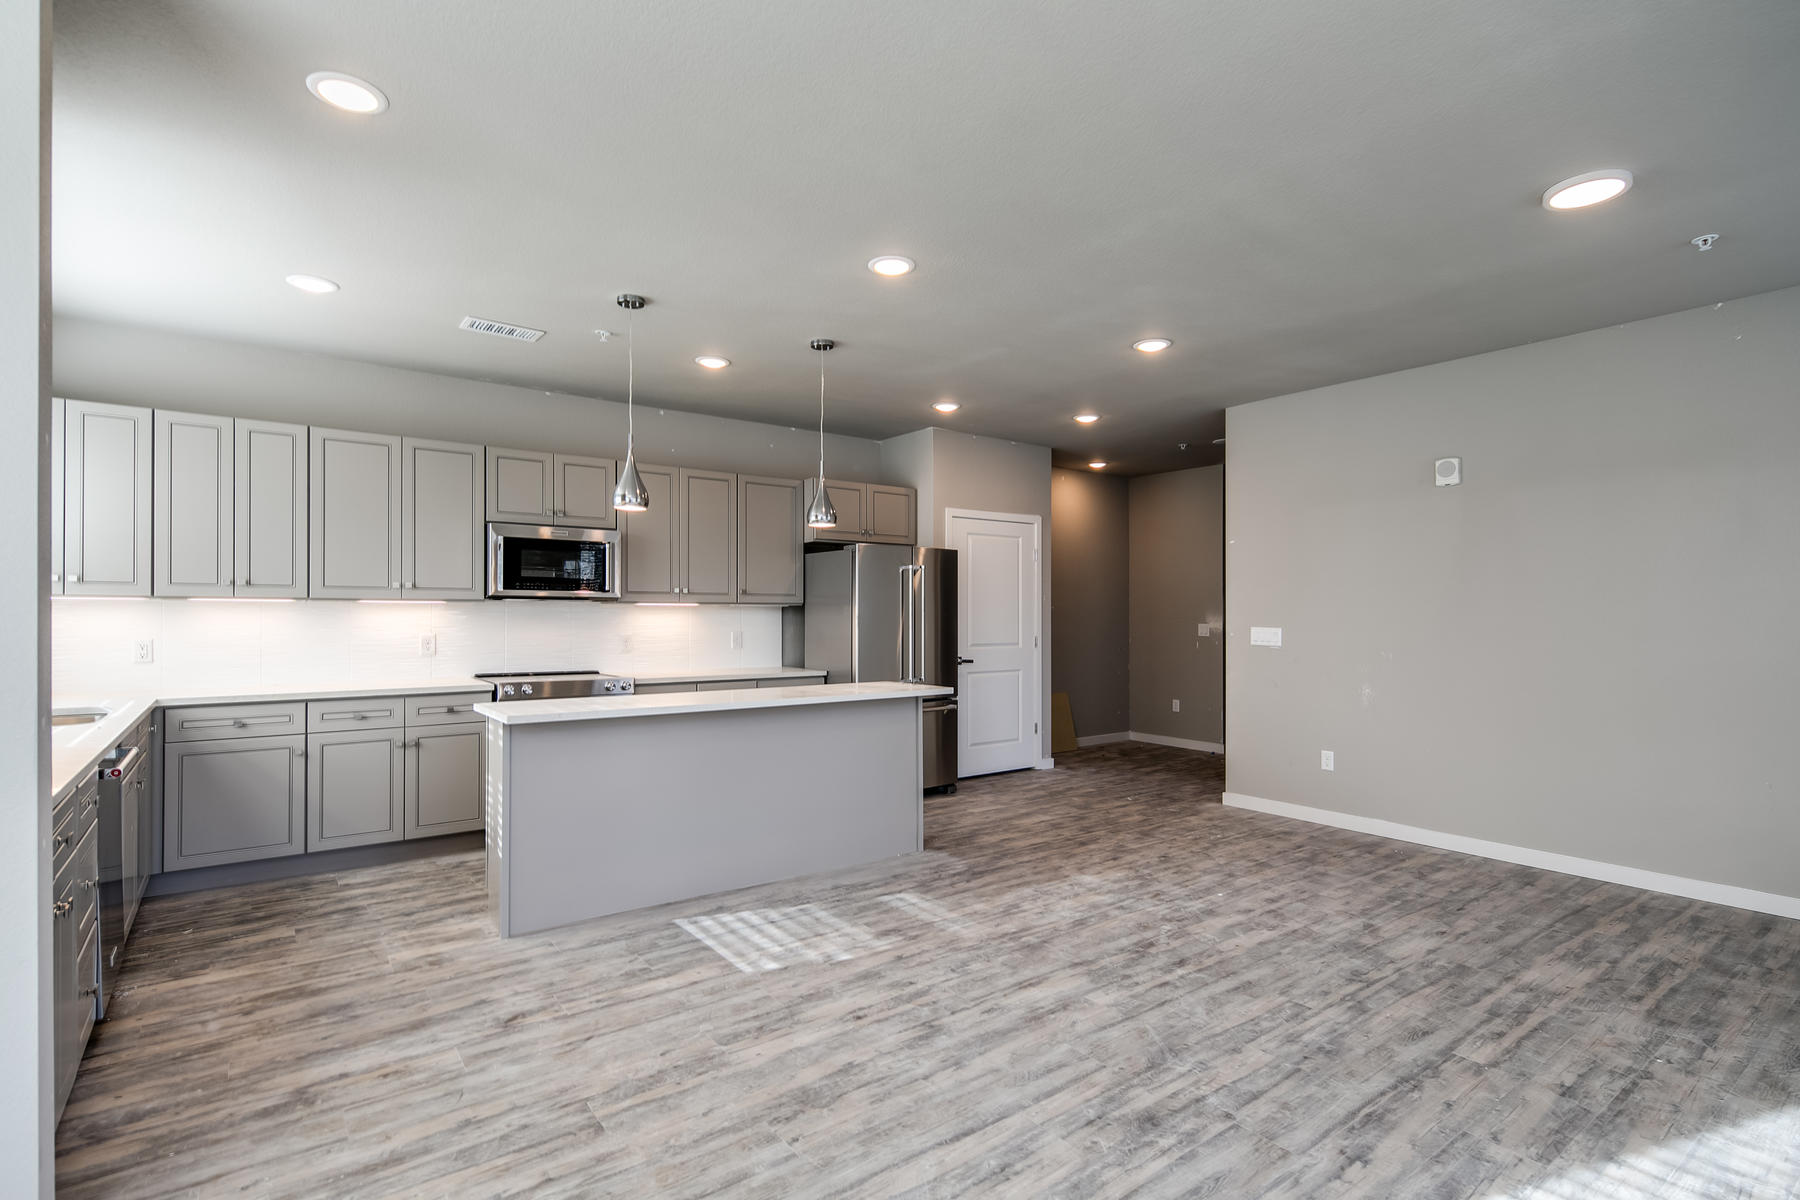 Additional photo for property listing at 155 South Monaco Parkway #309 155 S Monaco Parkway #309 Denver, Colorado 80224 United States